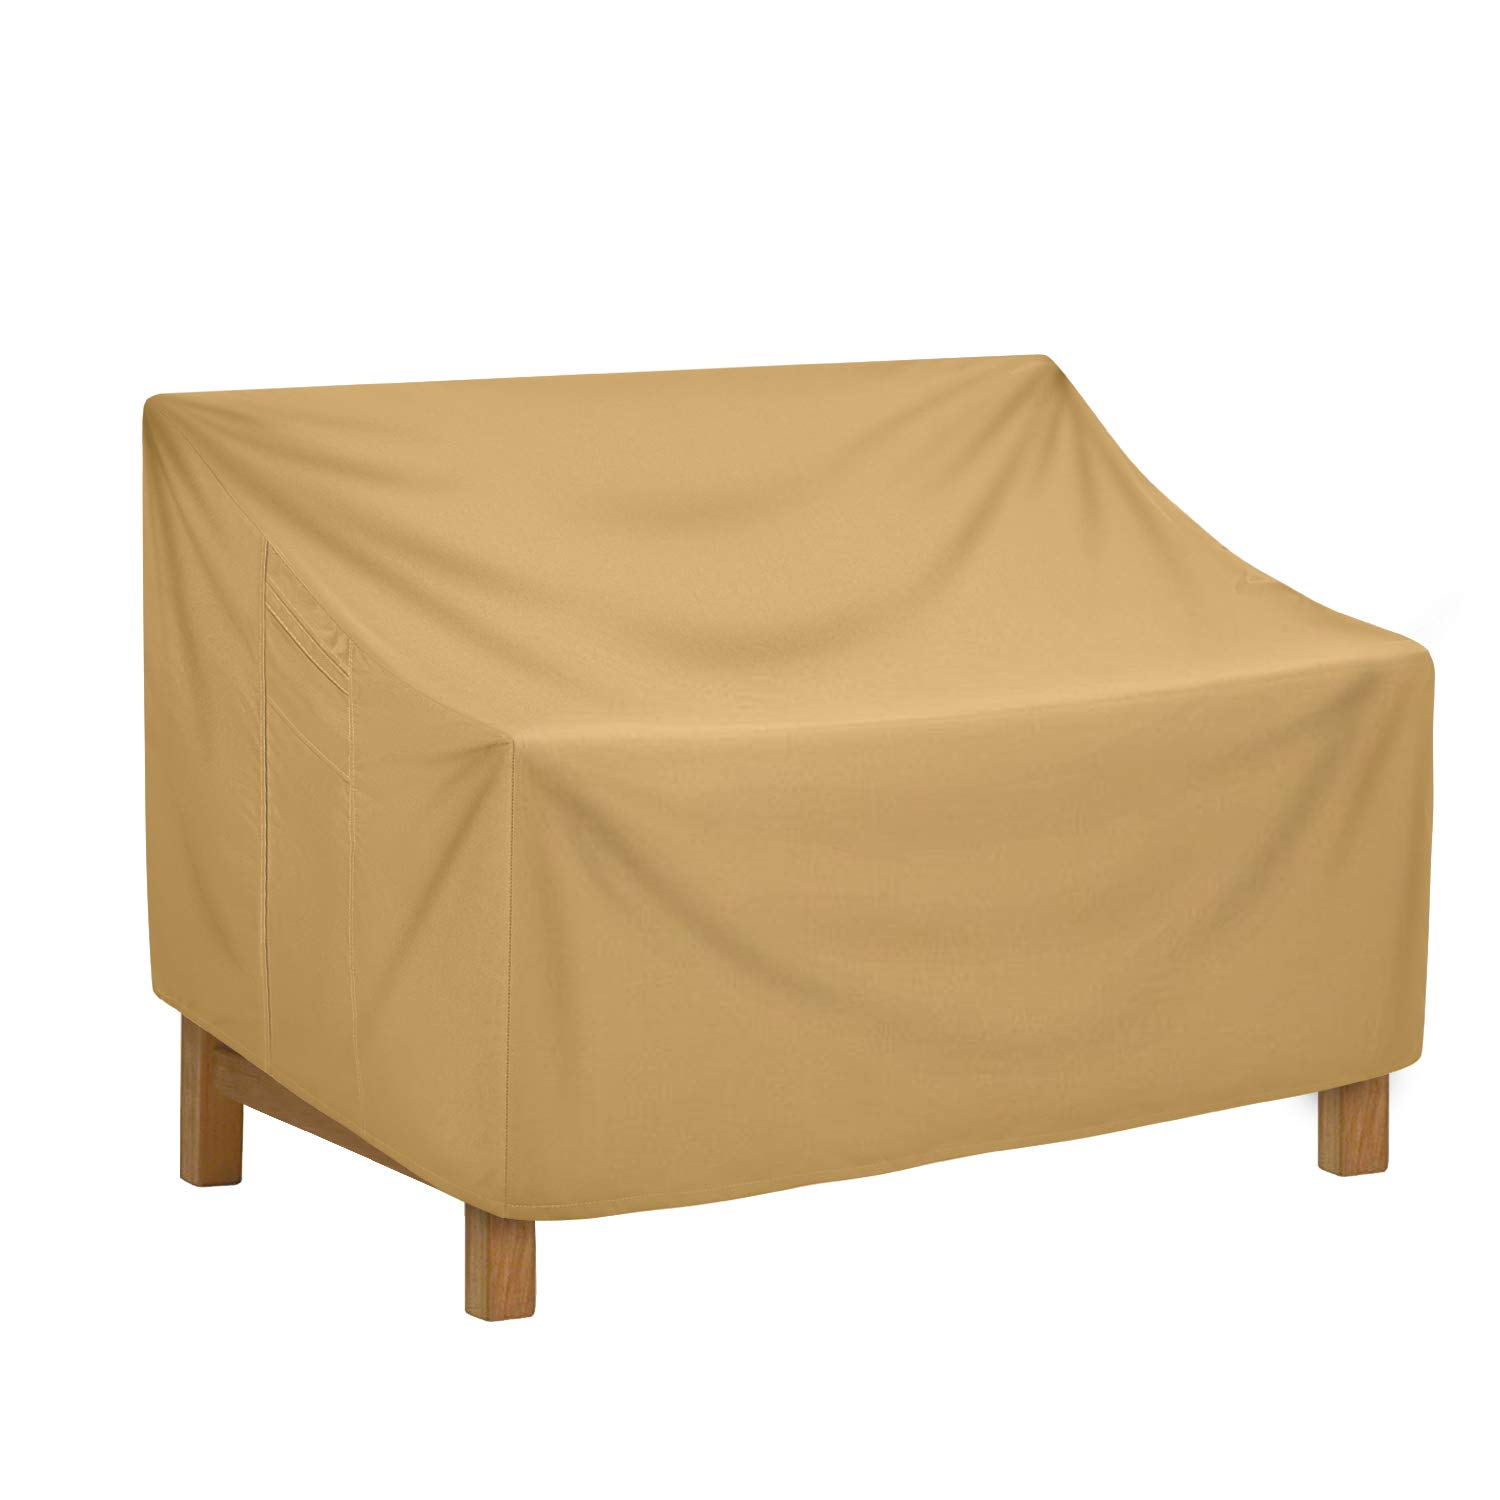 Sunkorto Patio Sofa Loveseat Cover, Waterproof Deep Seat Furniture Cover for Outdoor Balcony, 88x40x31 Inch by Sunkorto